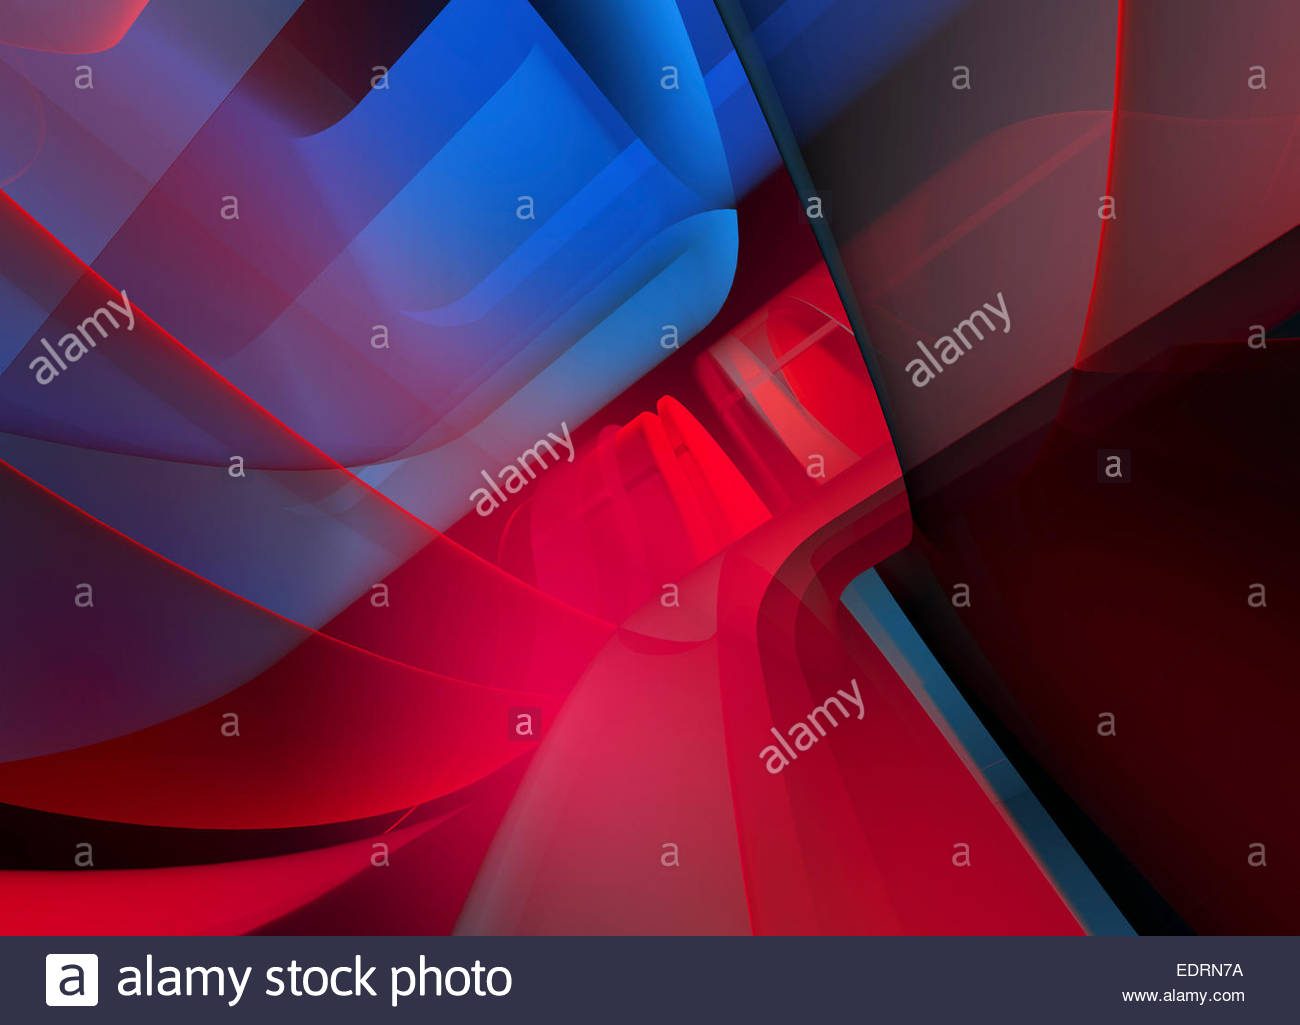 Abstract full frame red and blue backgrounds pattern - Stock Image